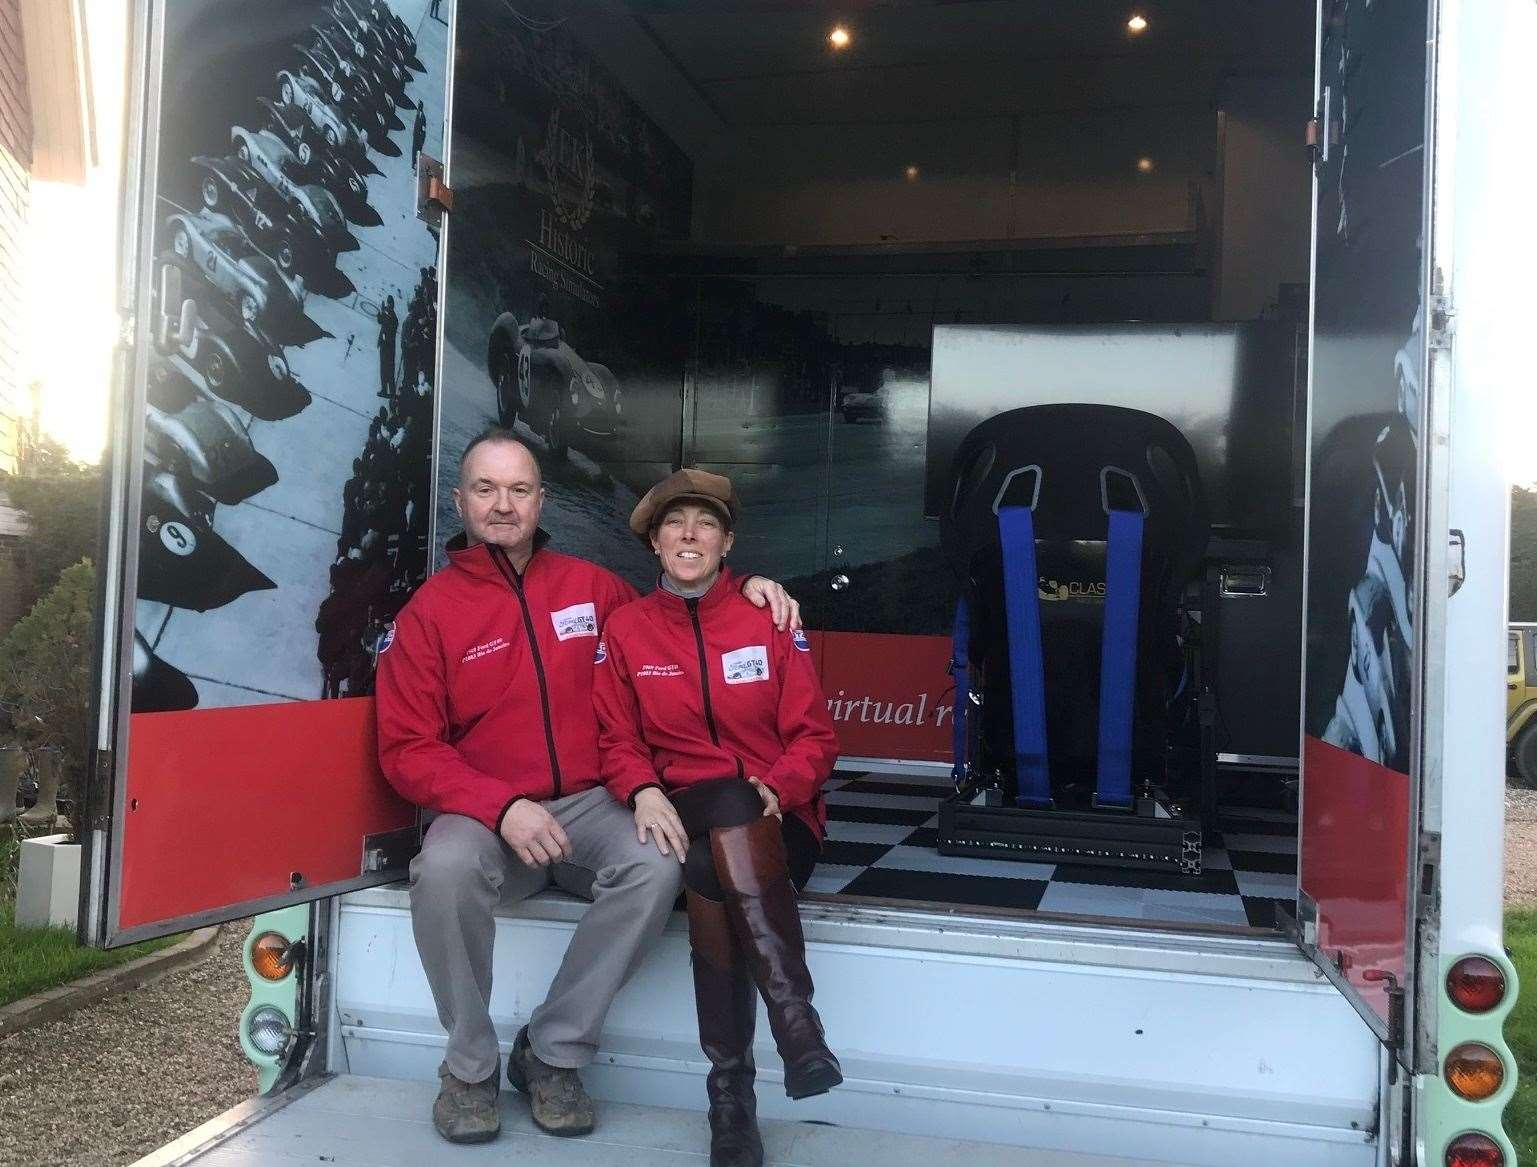 Emma and Kevin Llewellyn, owners of Historic Racing Simulators